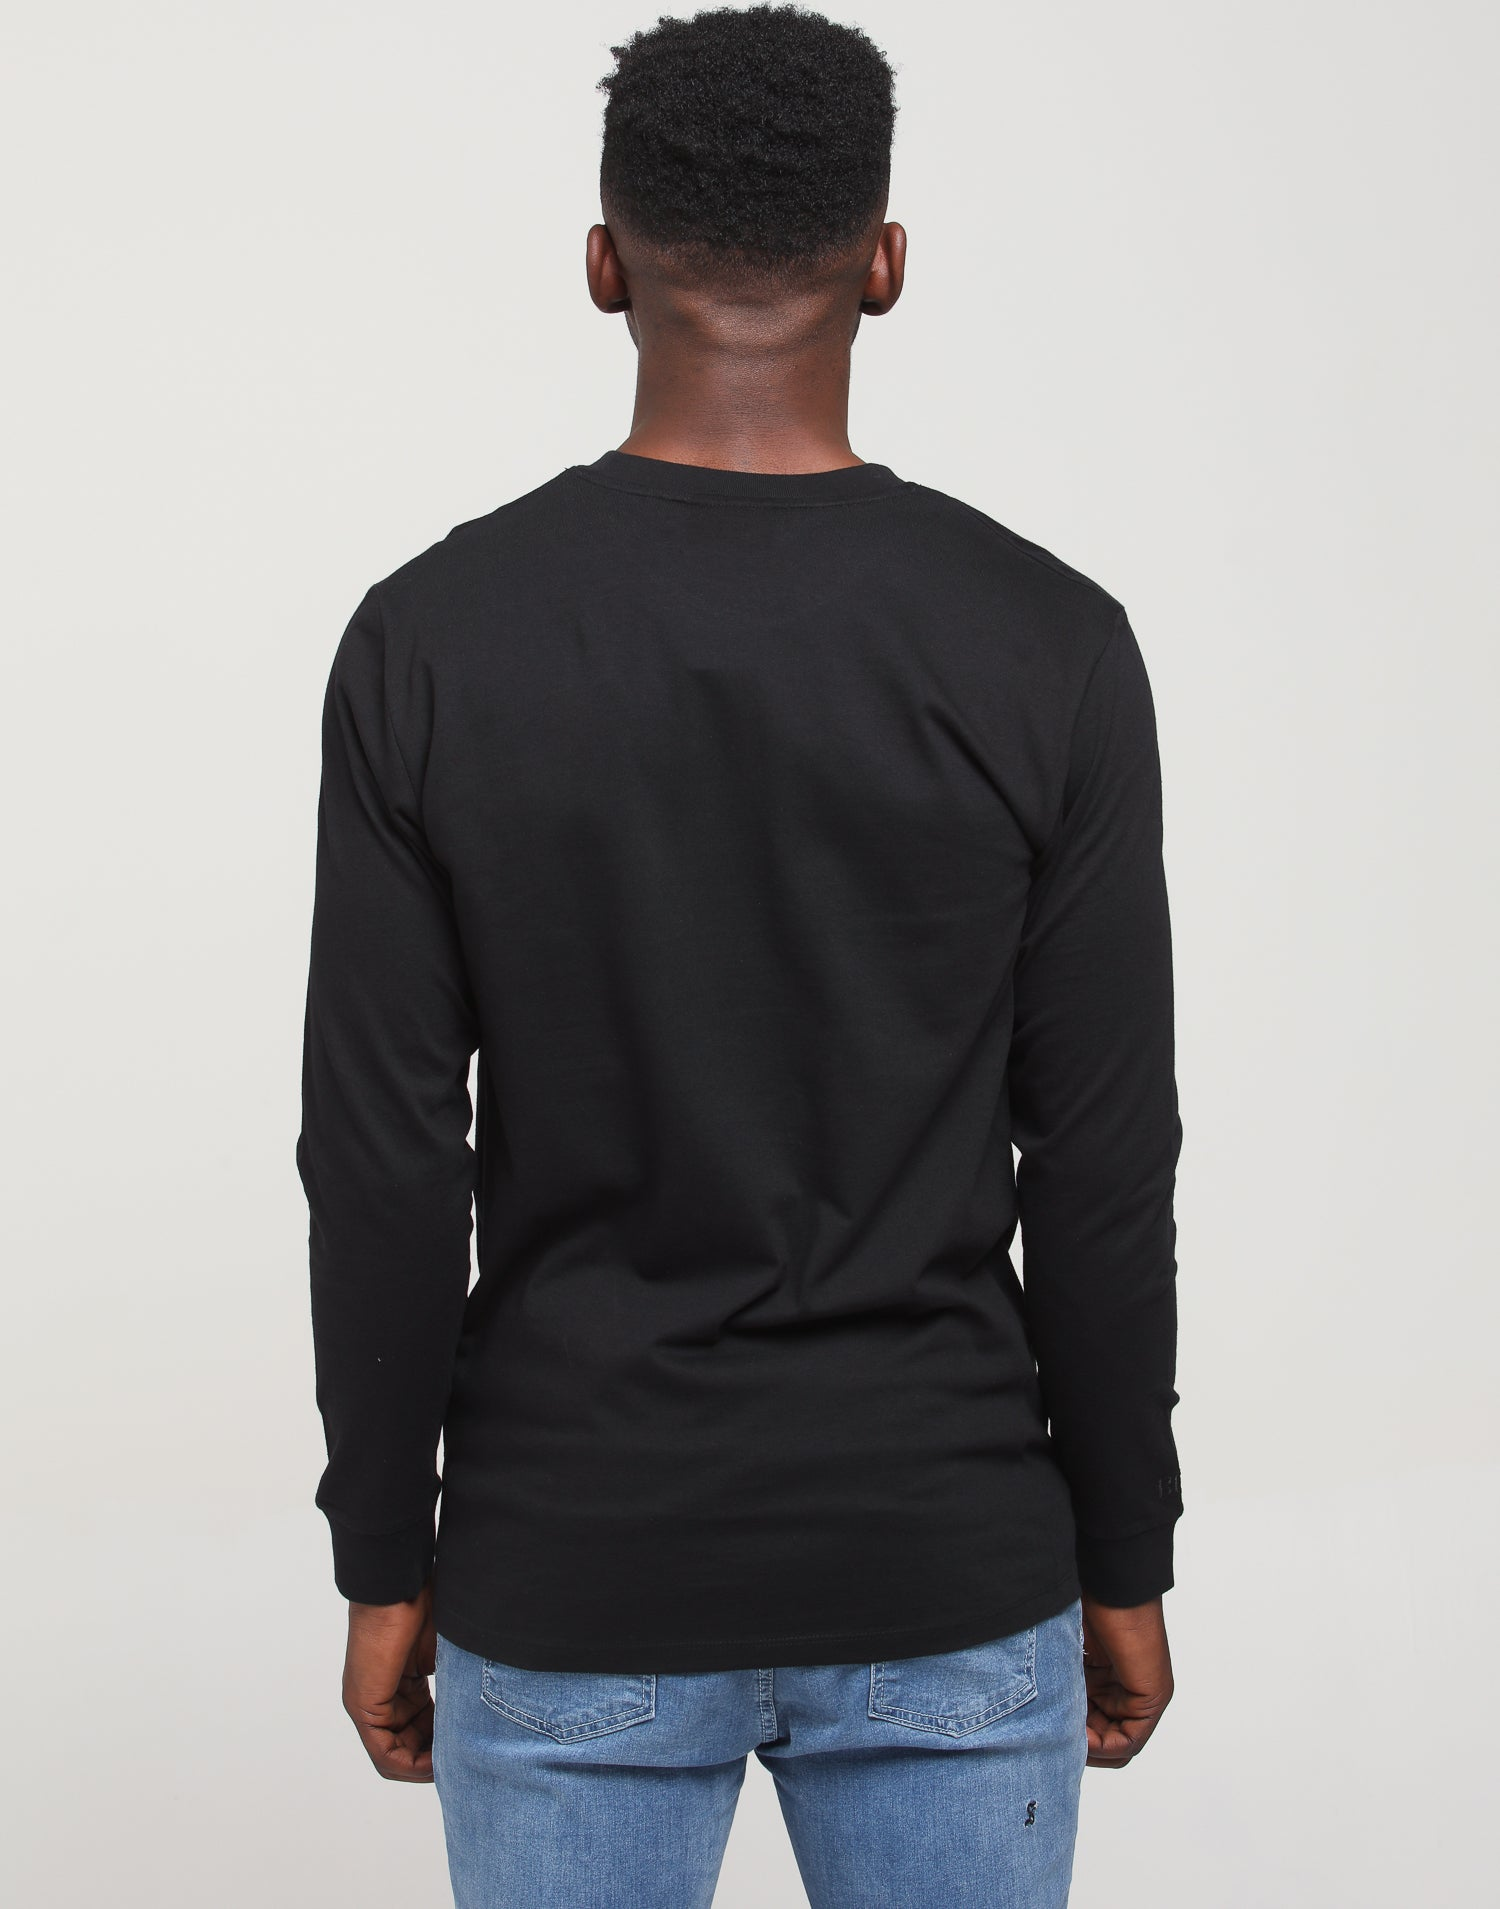 CHIEF LS TEE - Black